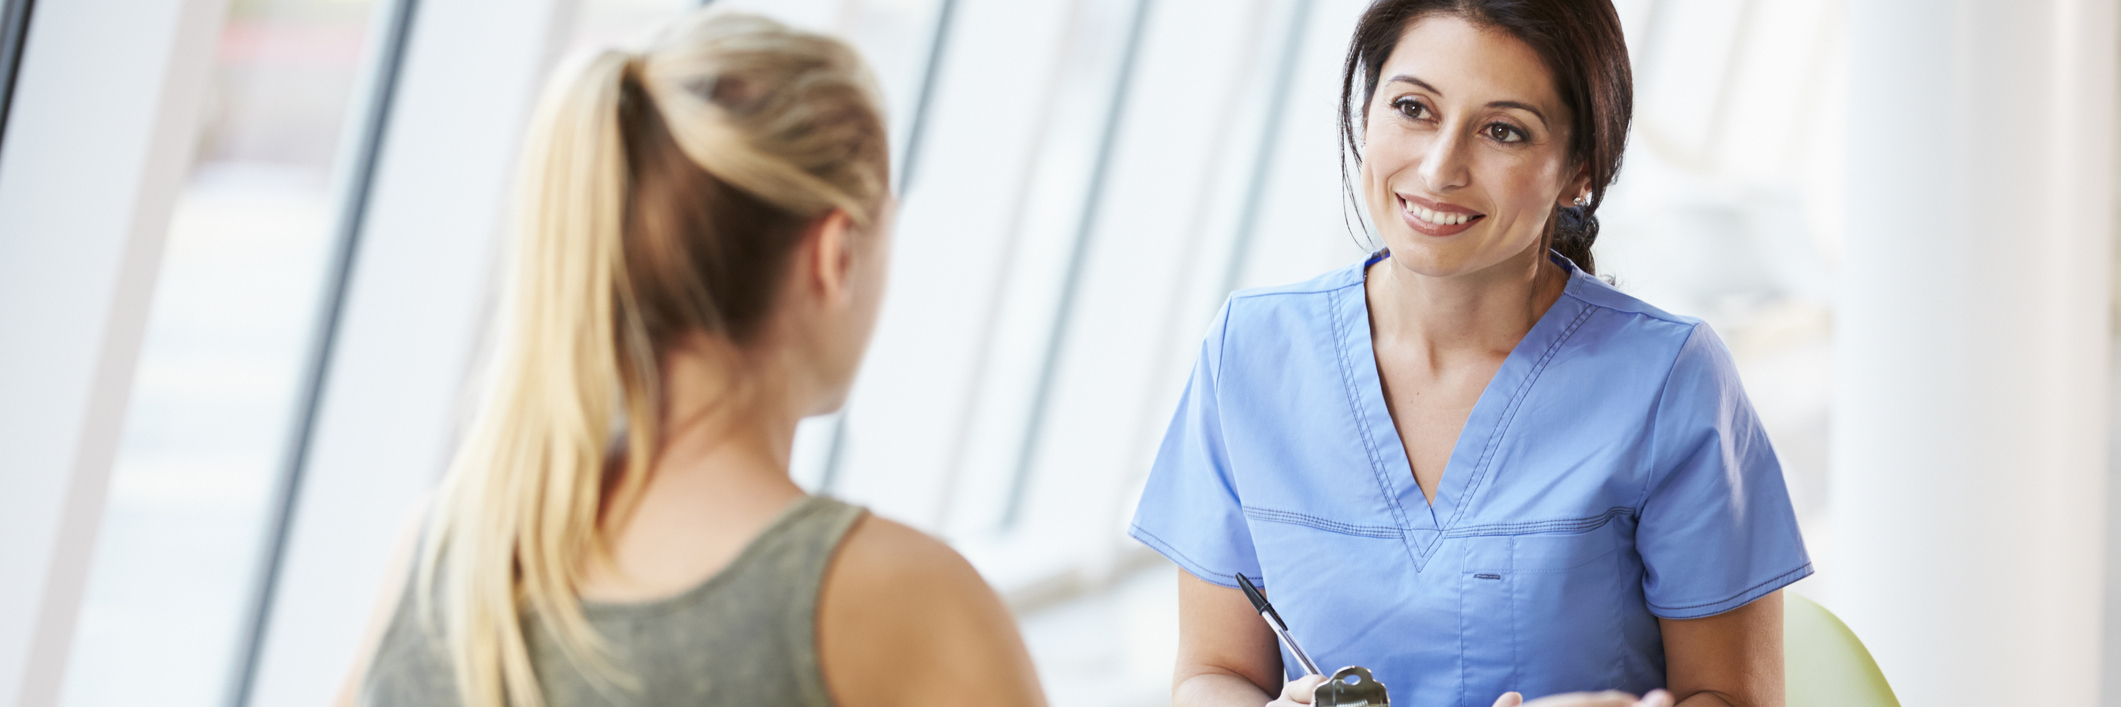 young woman talking to a nurse